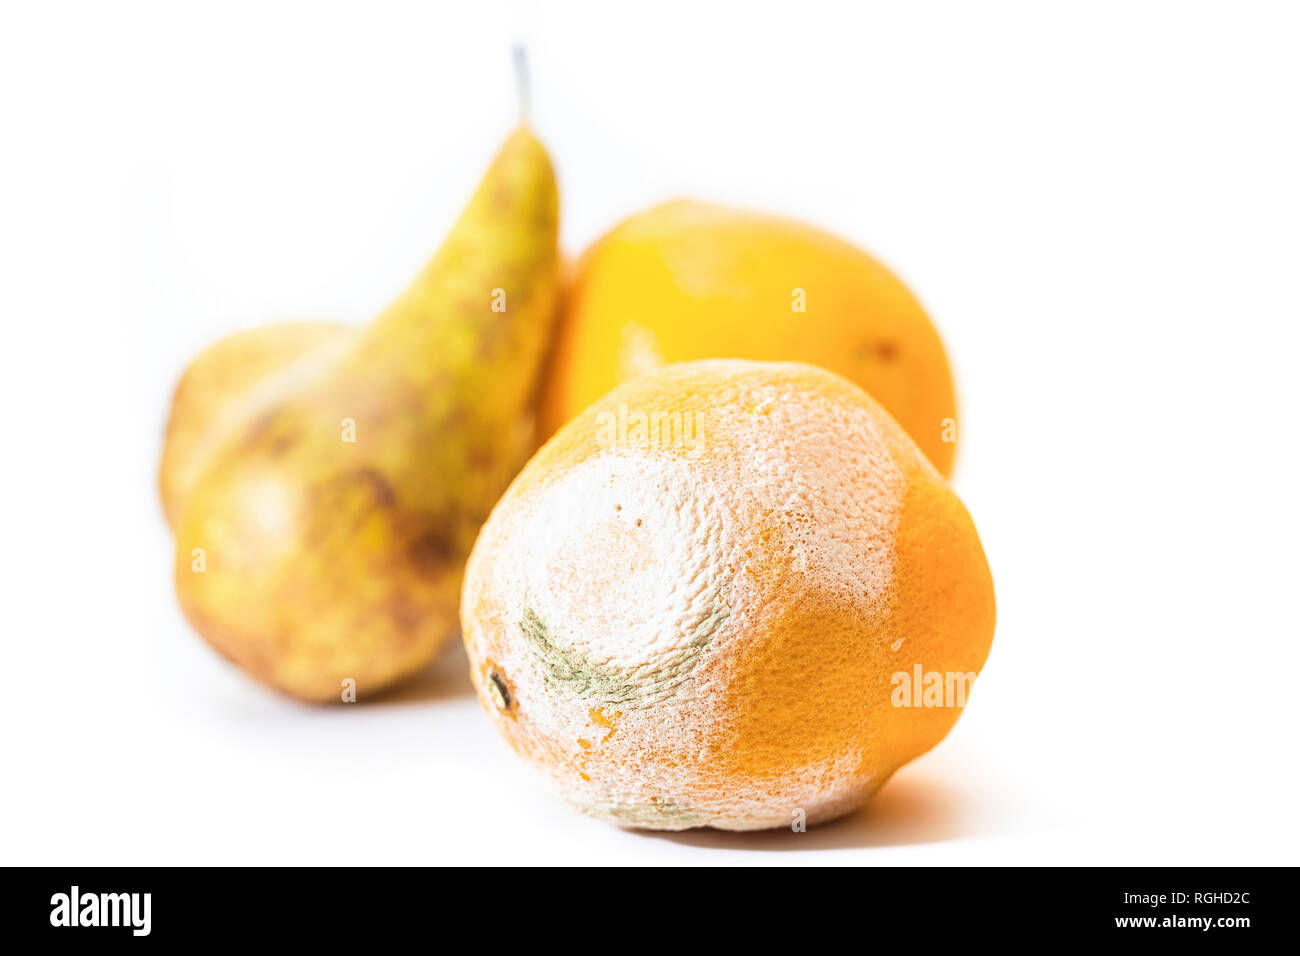 A spoiled orange with white and green mold, against a background of yellow fruit - Stock Image